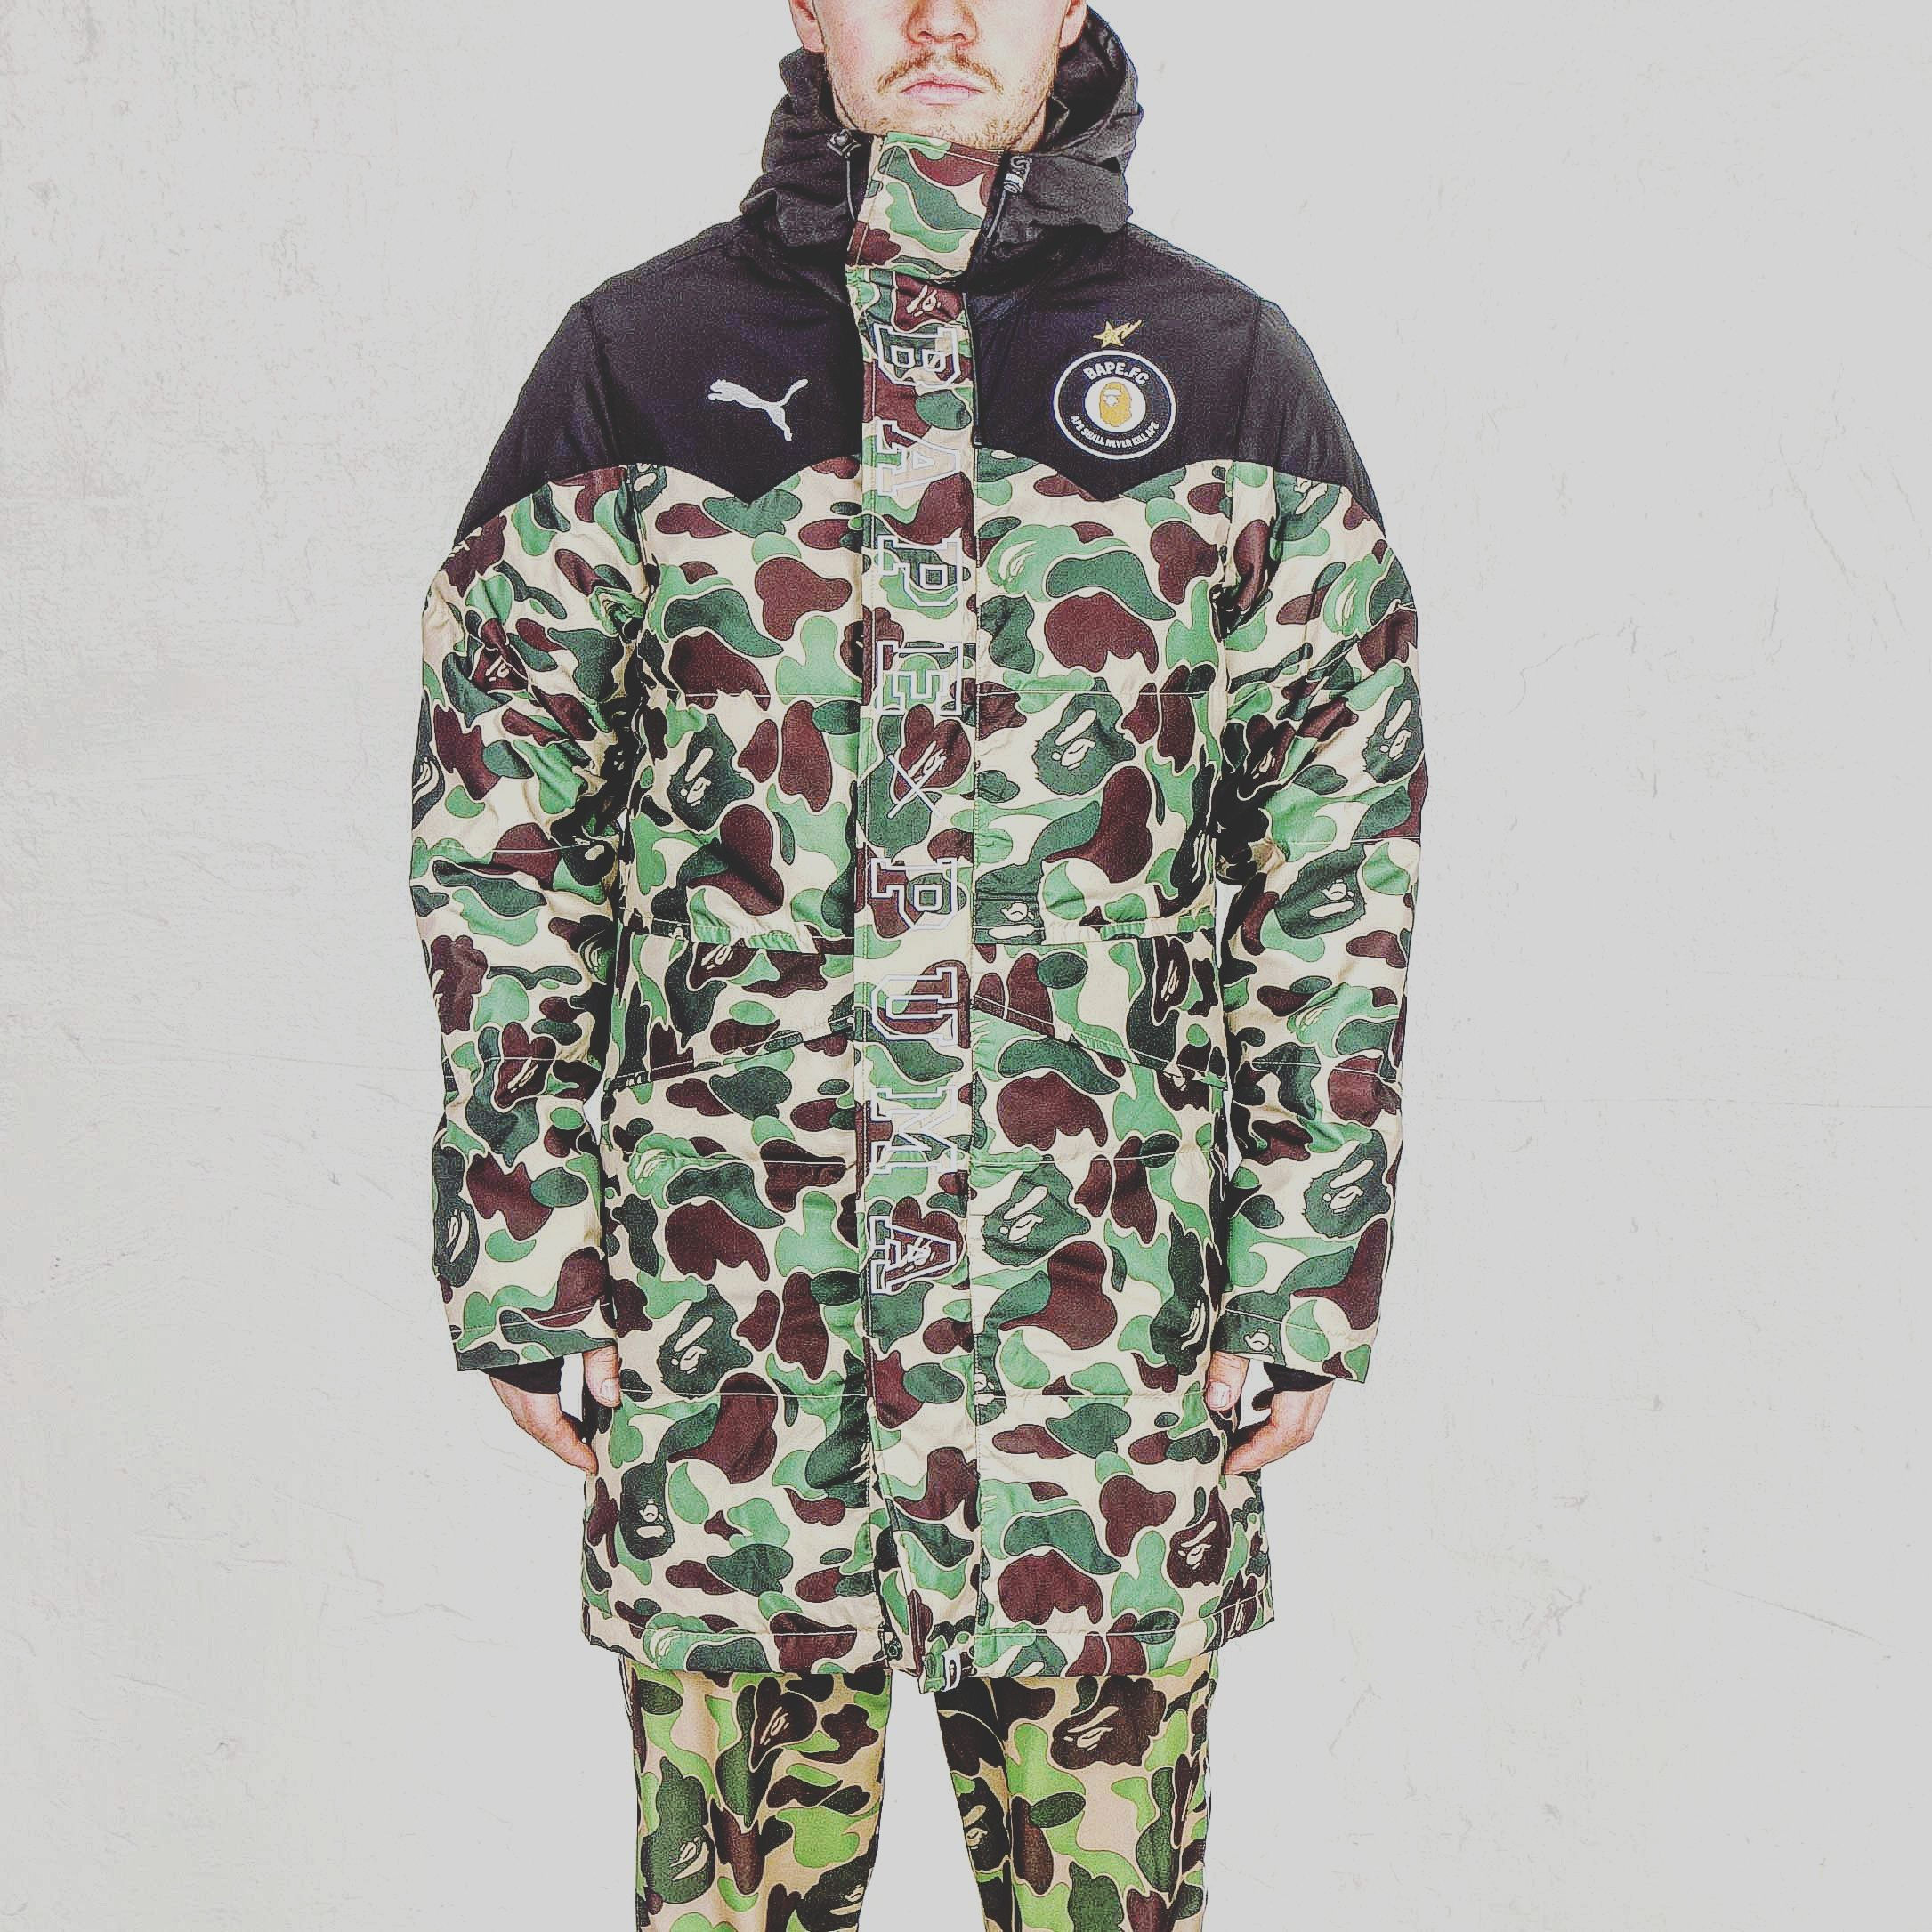 357620fc Bape x Puma camo coat | fashion in 2019 | Camo fashion, Camo gear ...